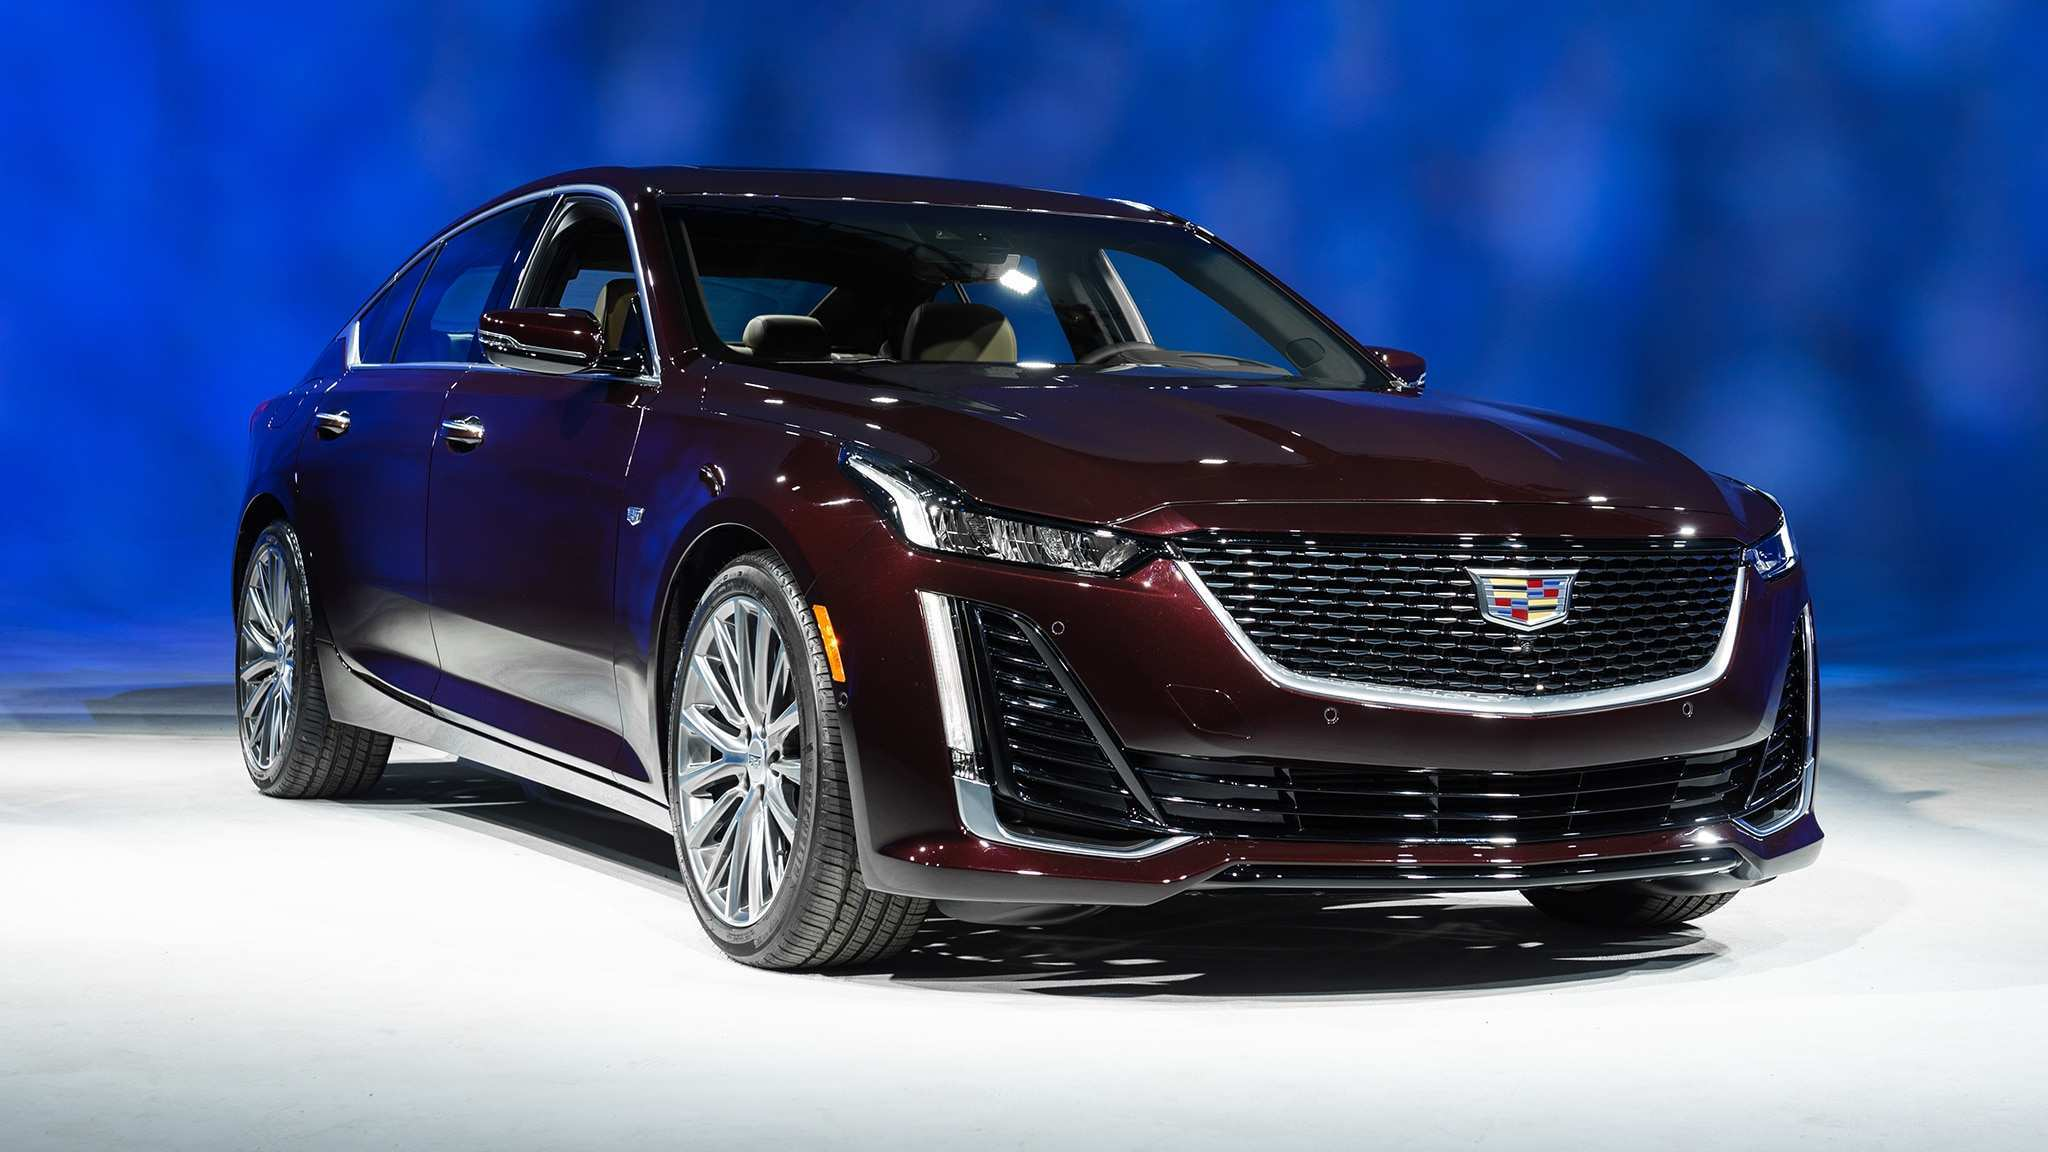 68 New 2020 Cadillac Cars Model